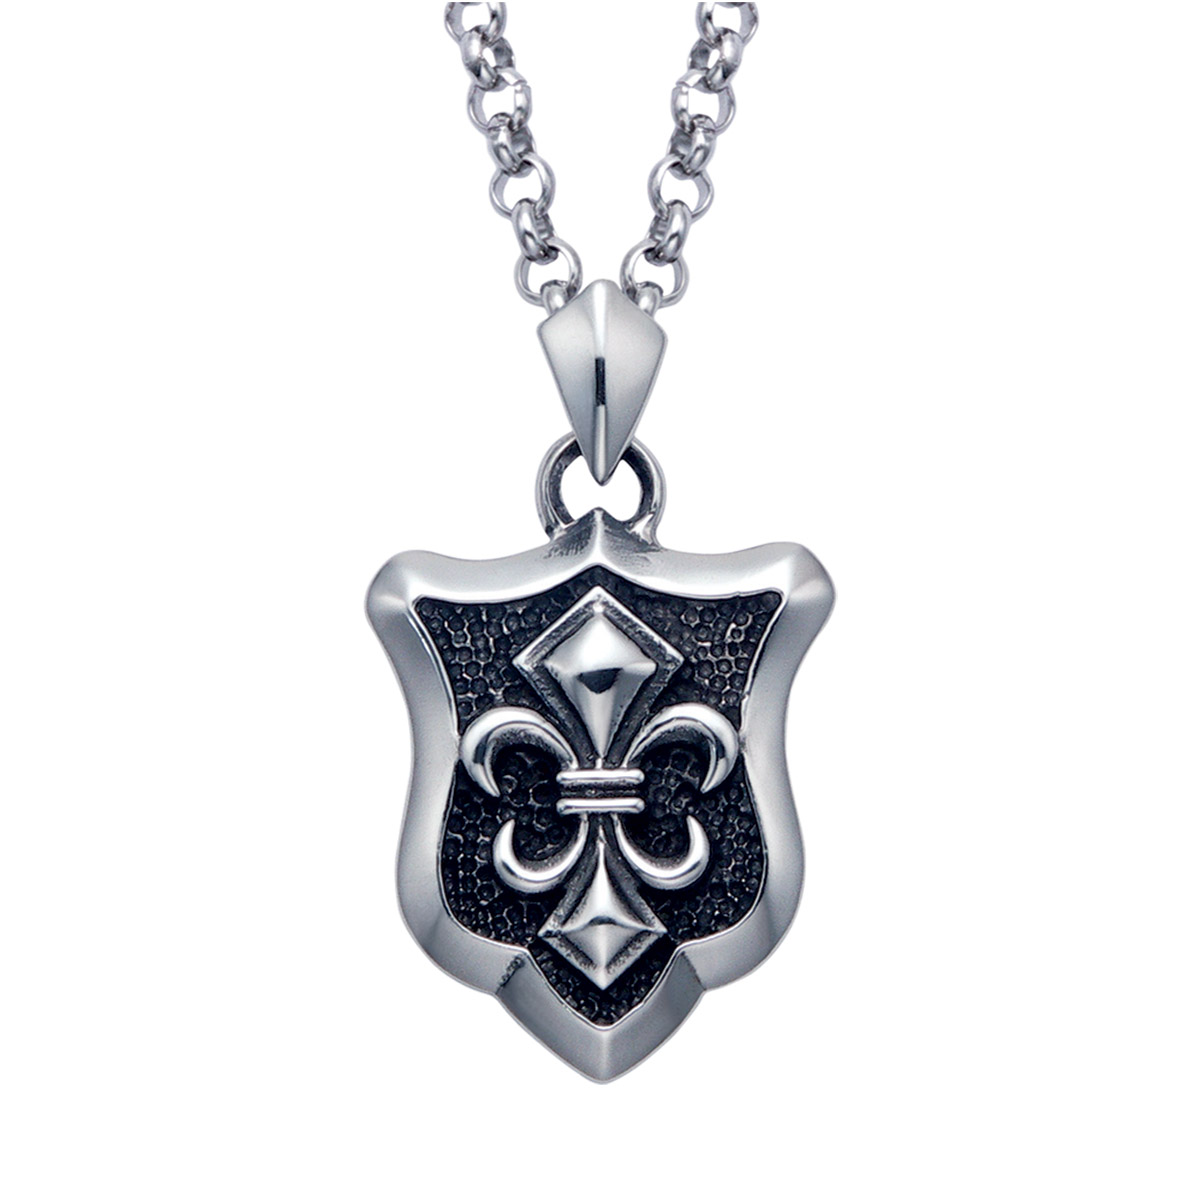 Wildthings Stainless Steel Necklace Fleur De Lis Shield with 24″ Chain